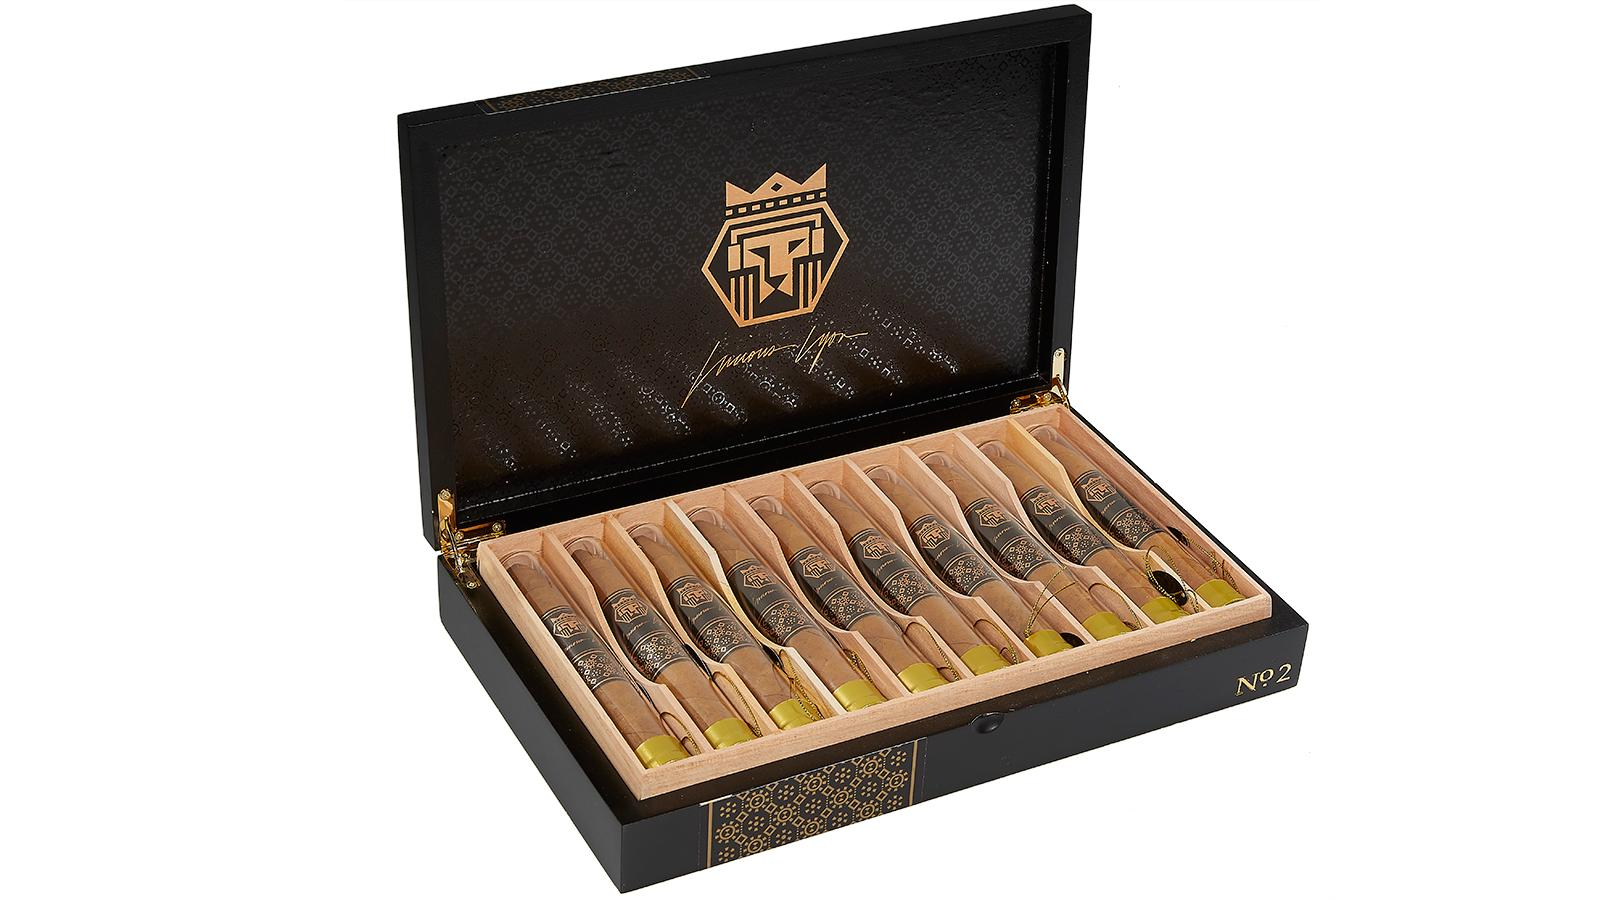 Smoking Empire: The Hit Fox TV Show Gets Its Own Cigar